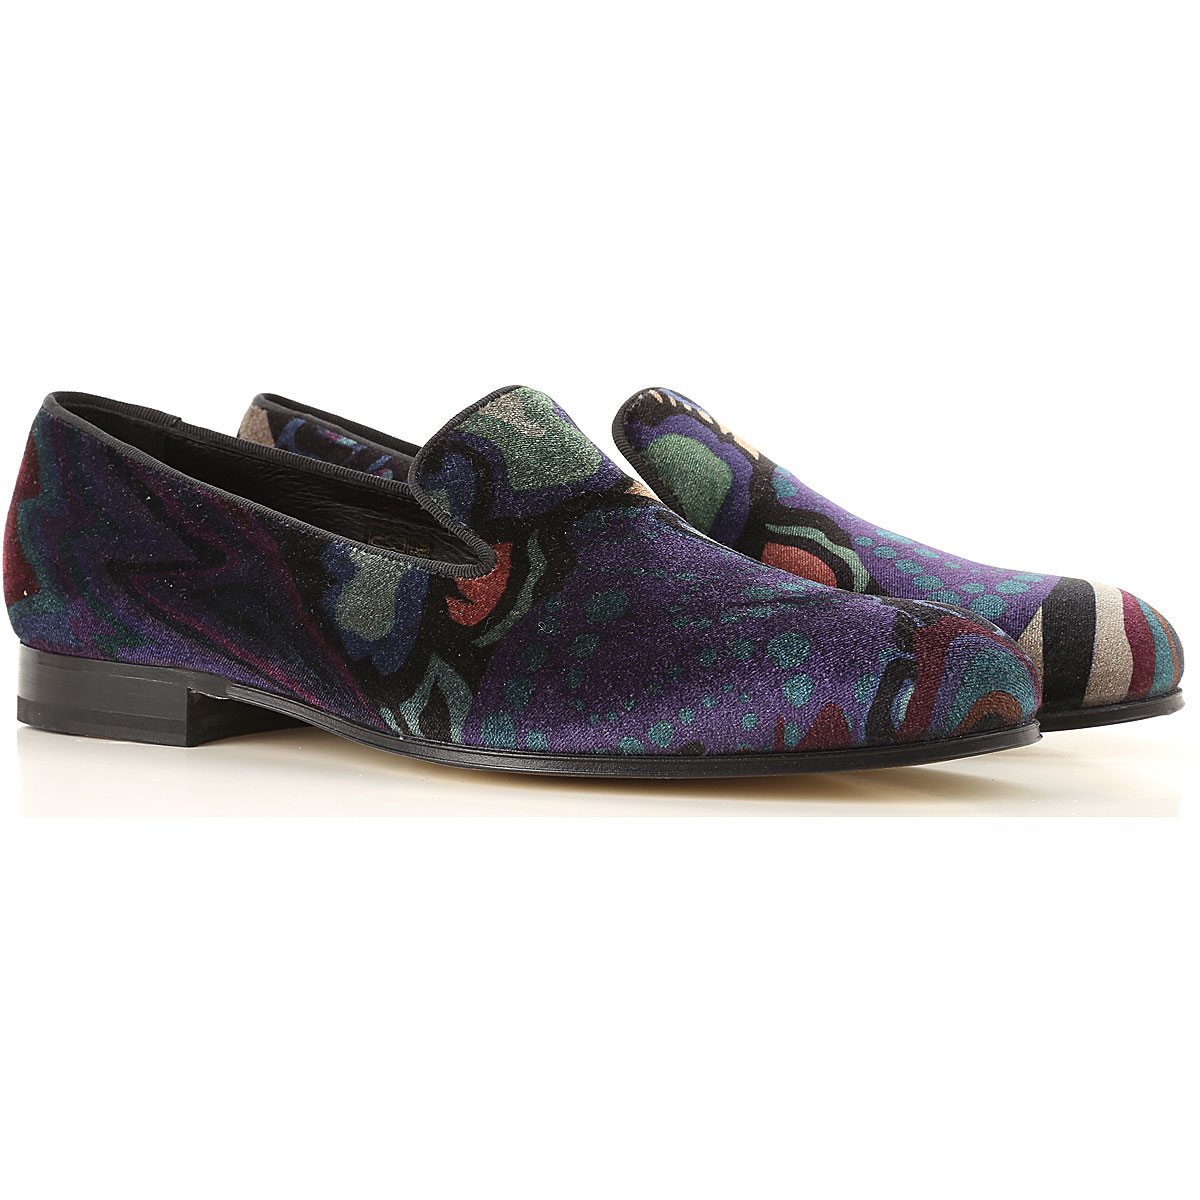 Paul Smith Loafers for Women in Outlet Violet USA - GOOFASH